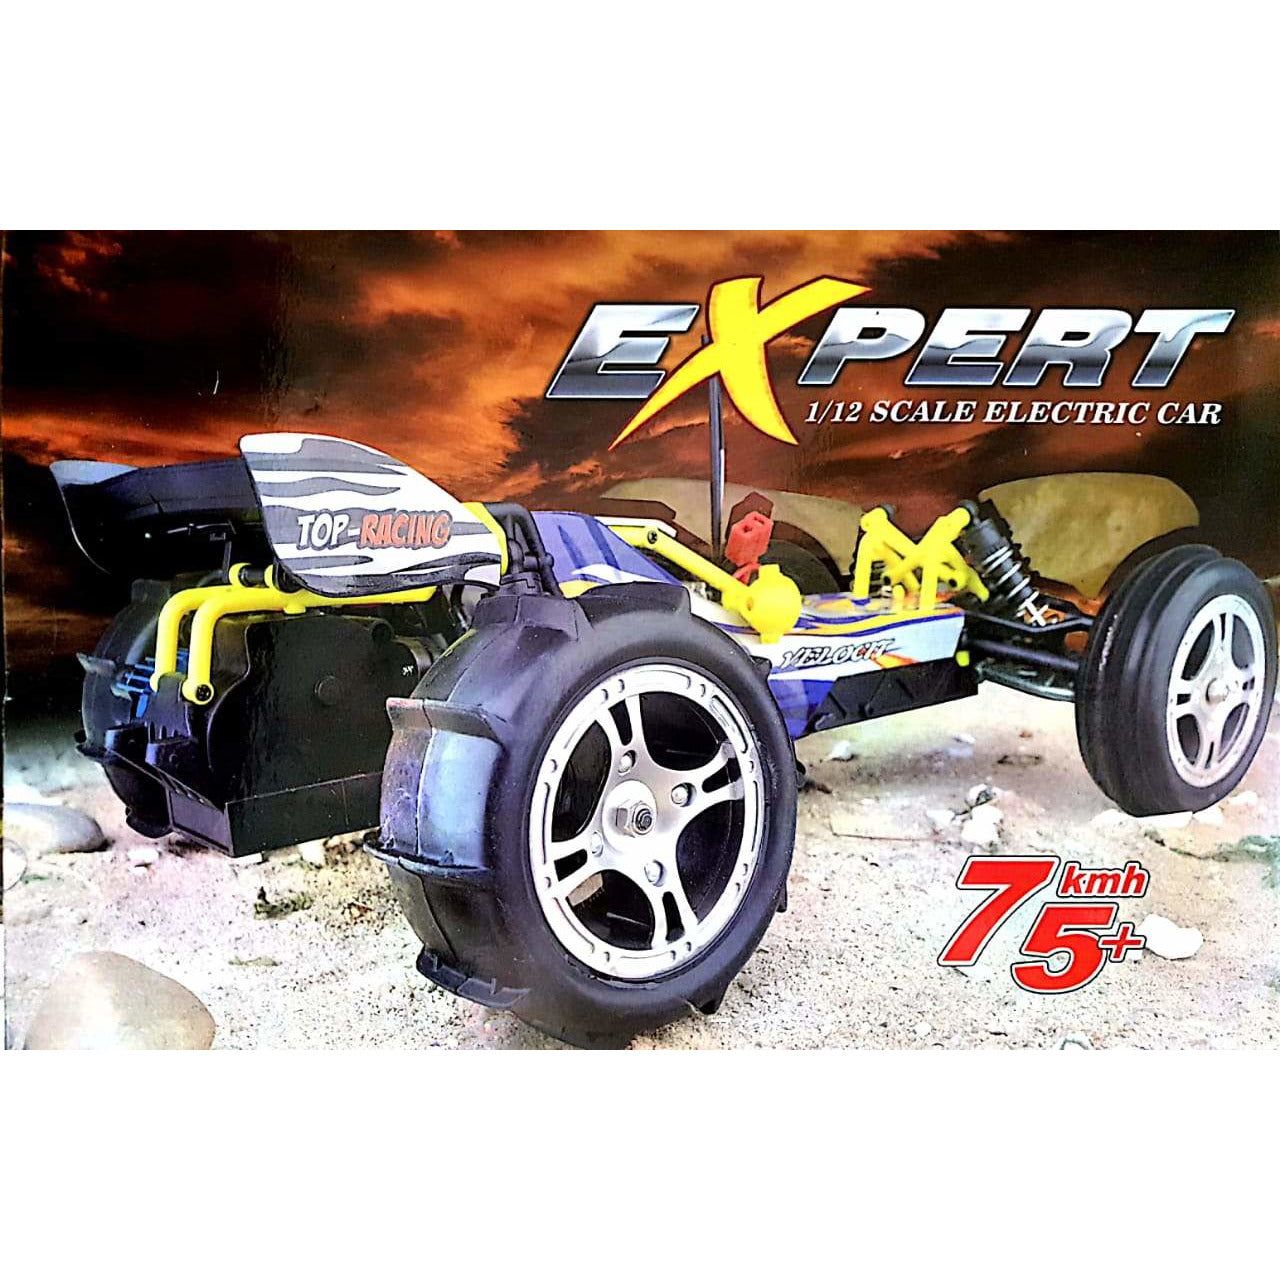 75 KMPH racing car by RAF